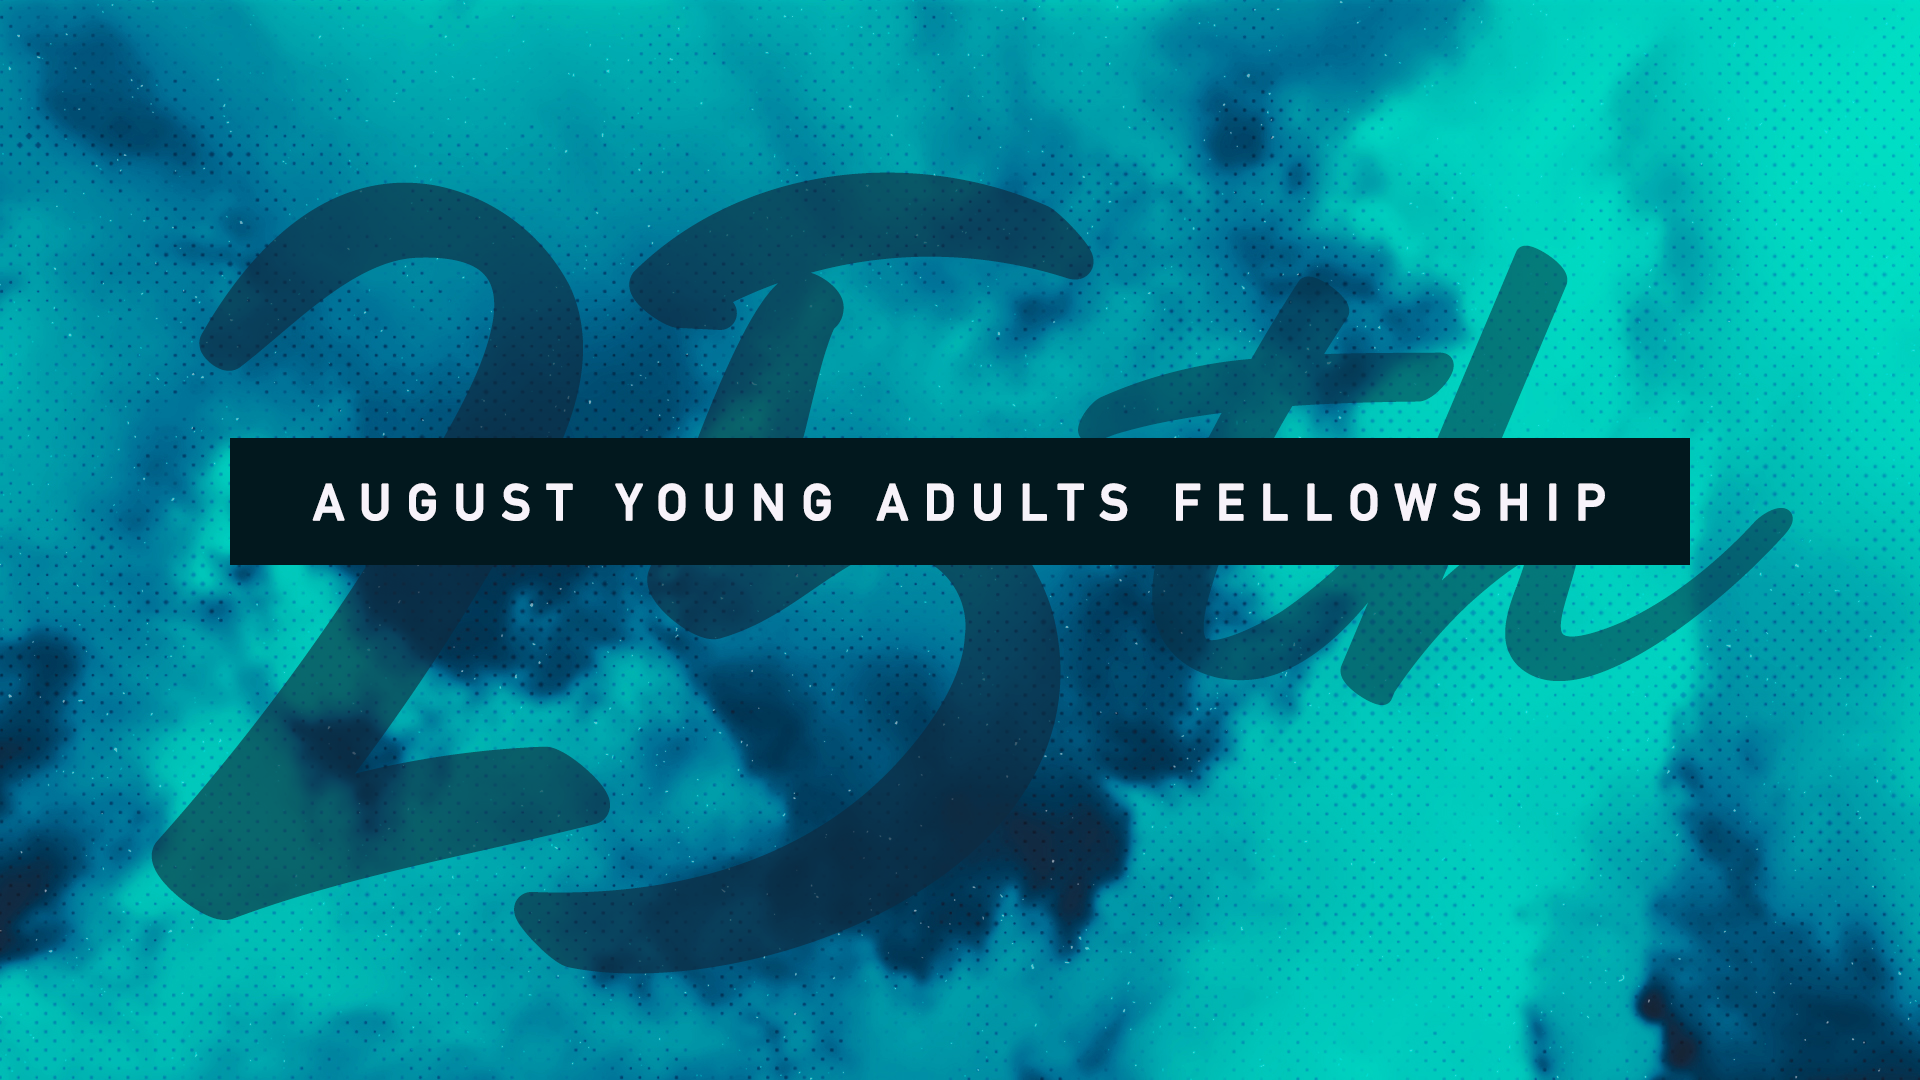 2019YoungAdultsFellowship_August_3-2.png